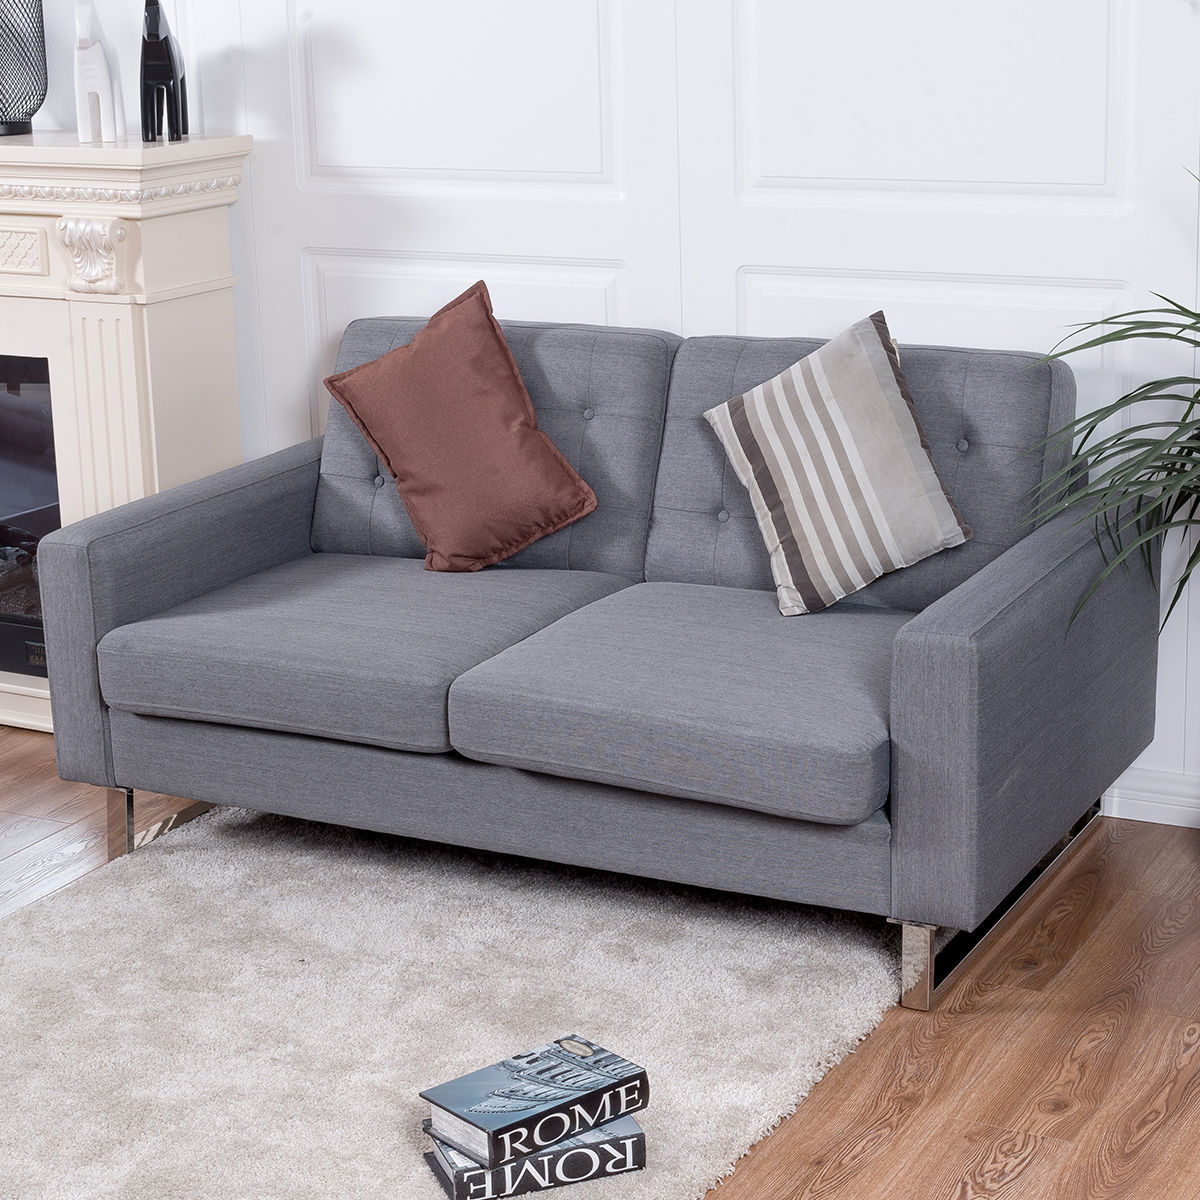 Giantex 2 Seat Sofa Couch Home Office Modern <font><b>Loveseat</b></font> Fabric Upholstered Tufted Luxury Sofas Living Room Furniture HW56261